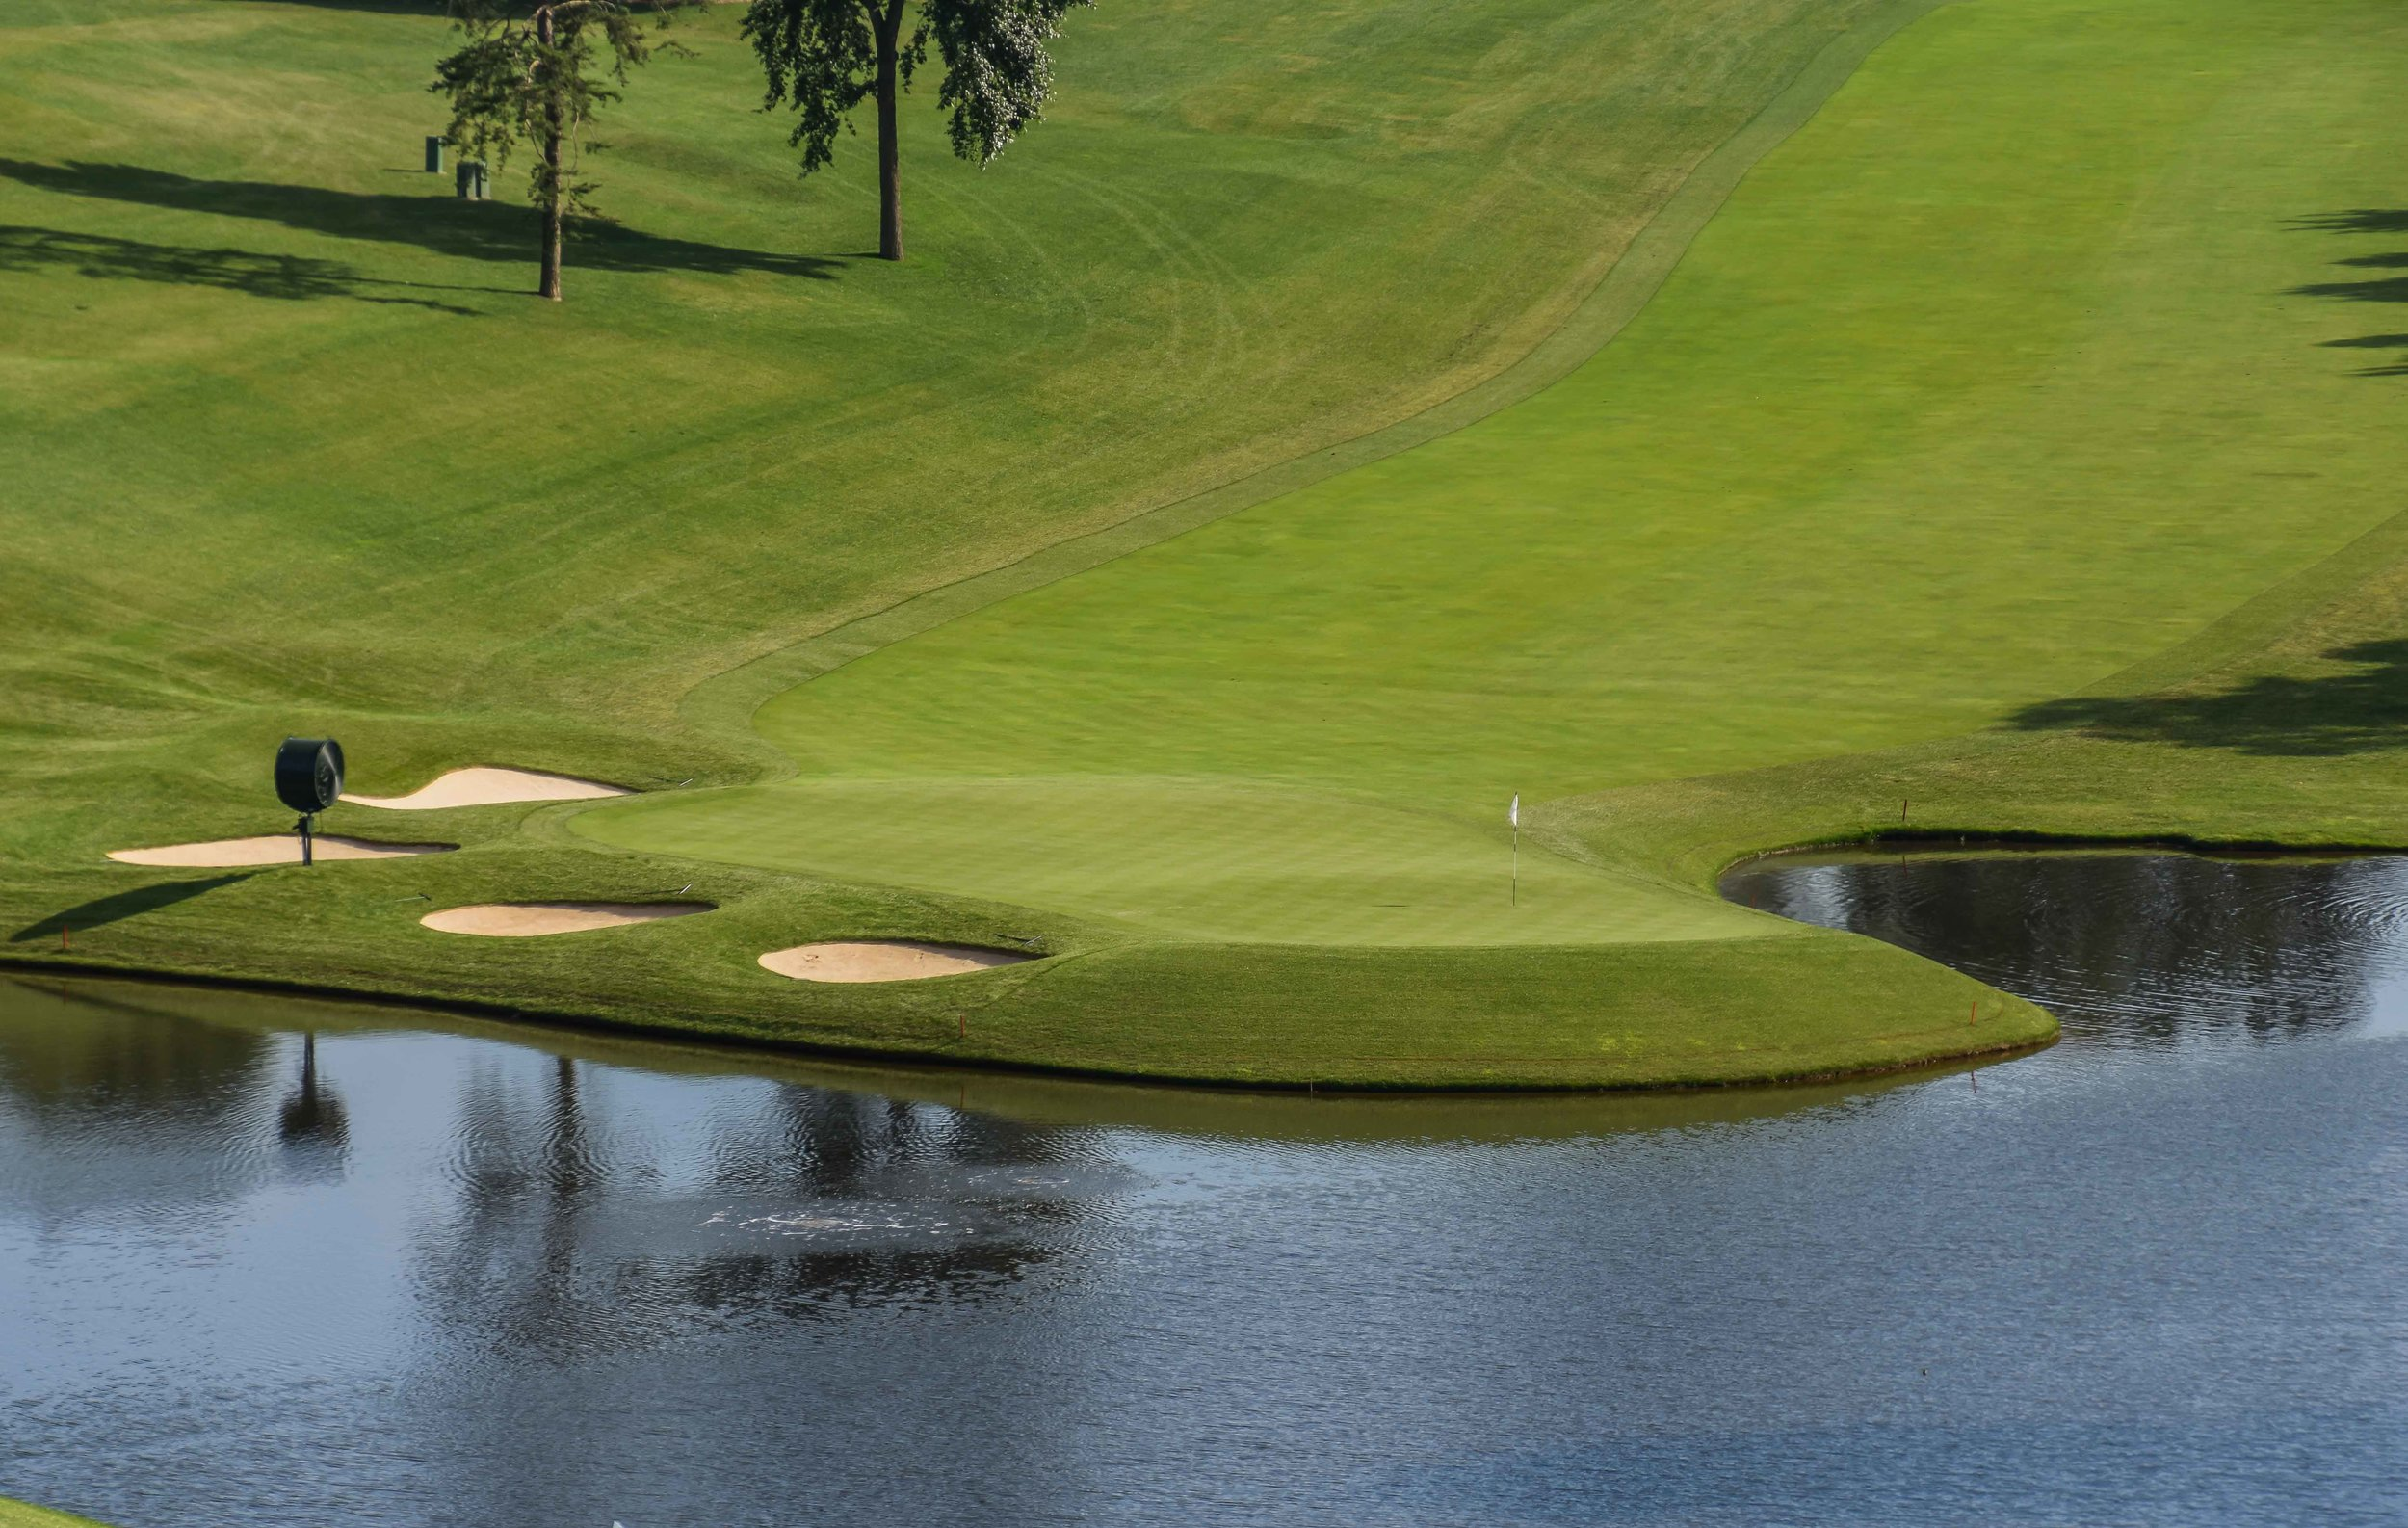 The iconic 18th hole at Congressional